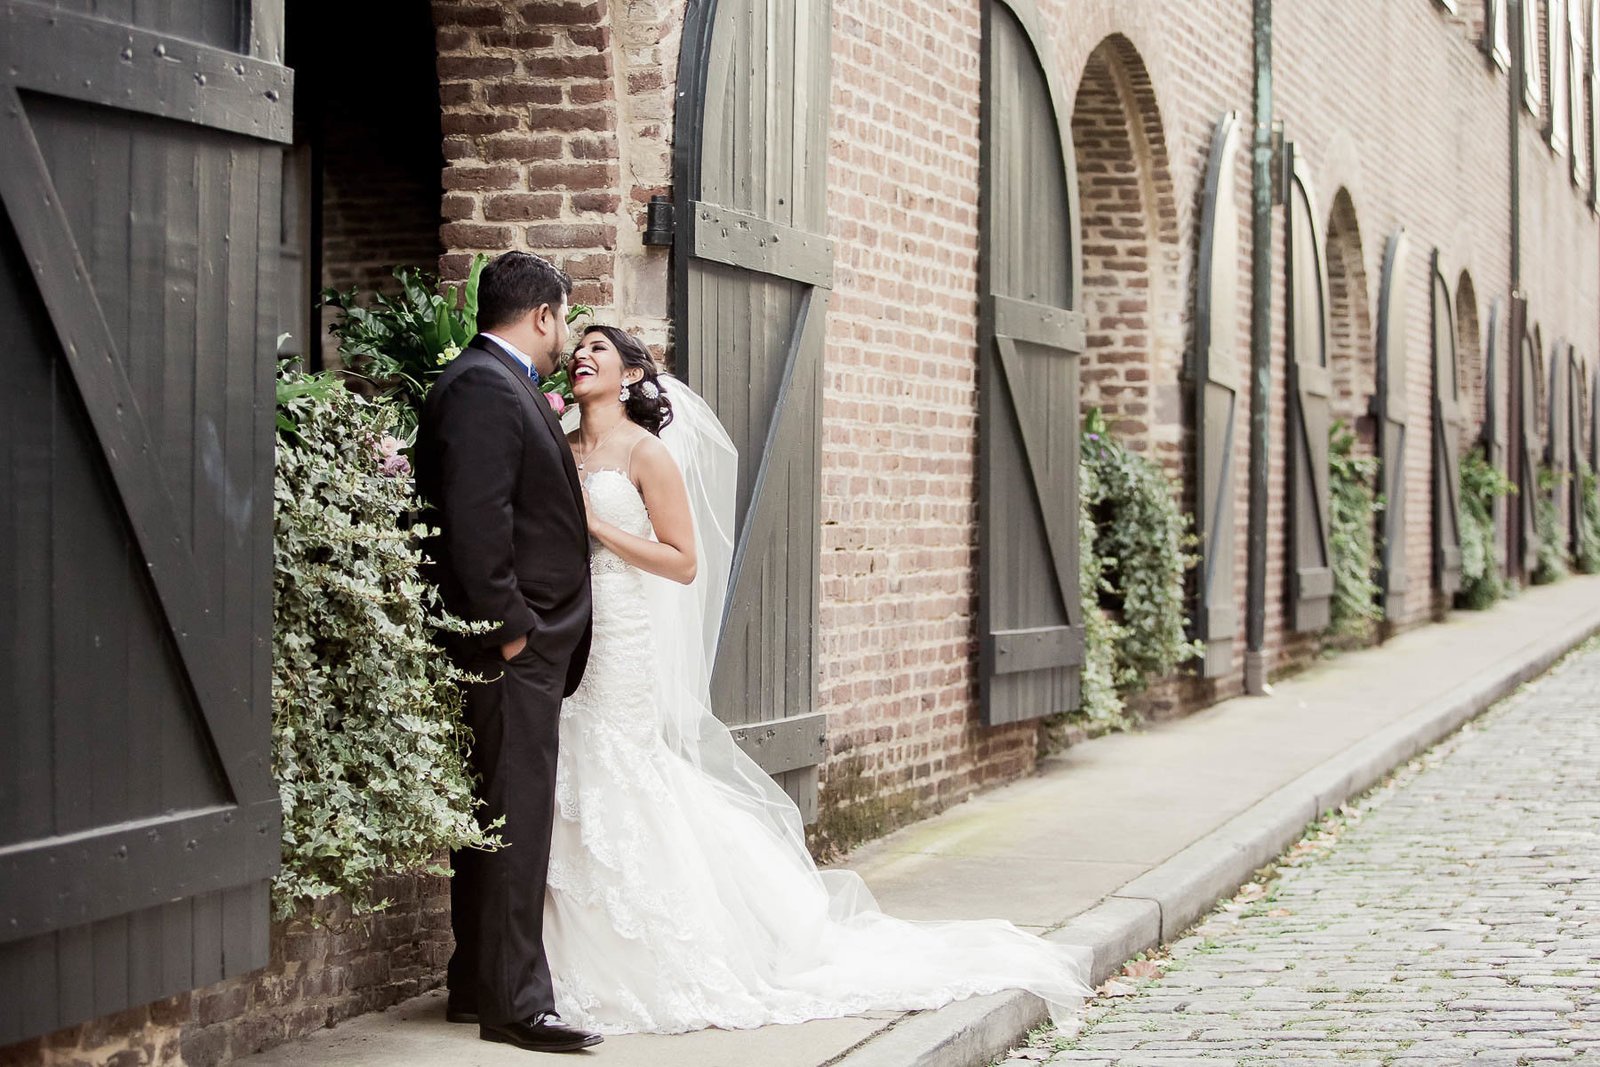 Bride and groom stand by stable doors, French Quarter, South Carolina